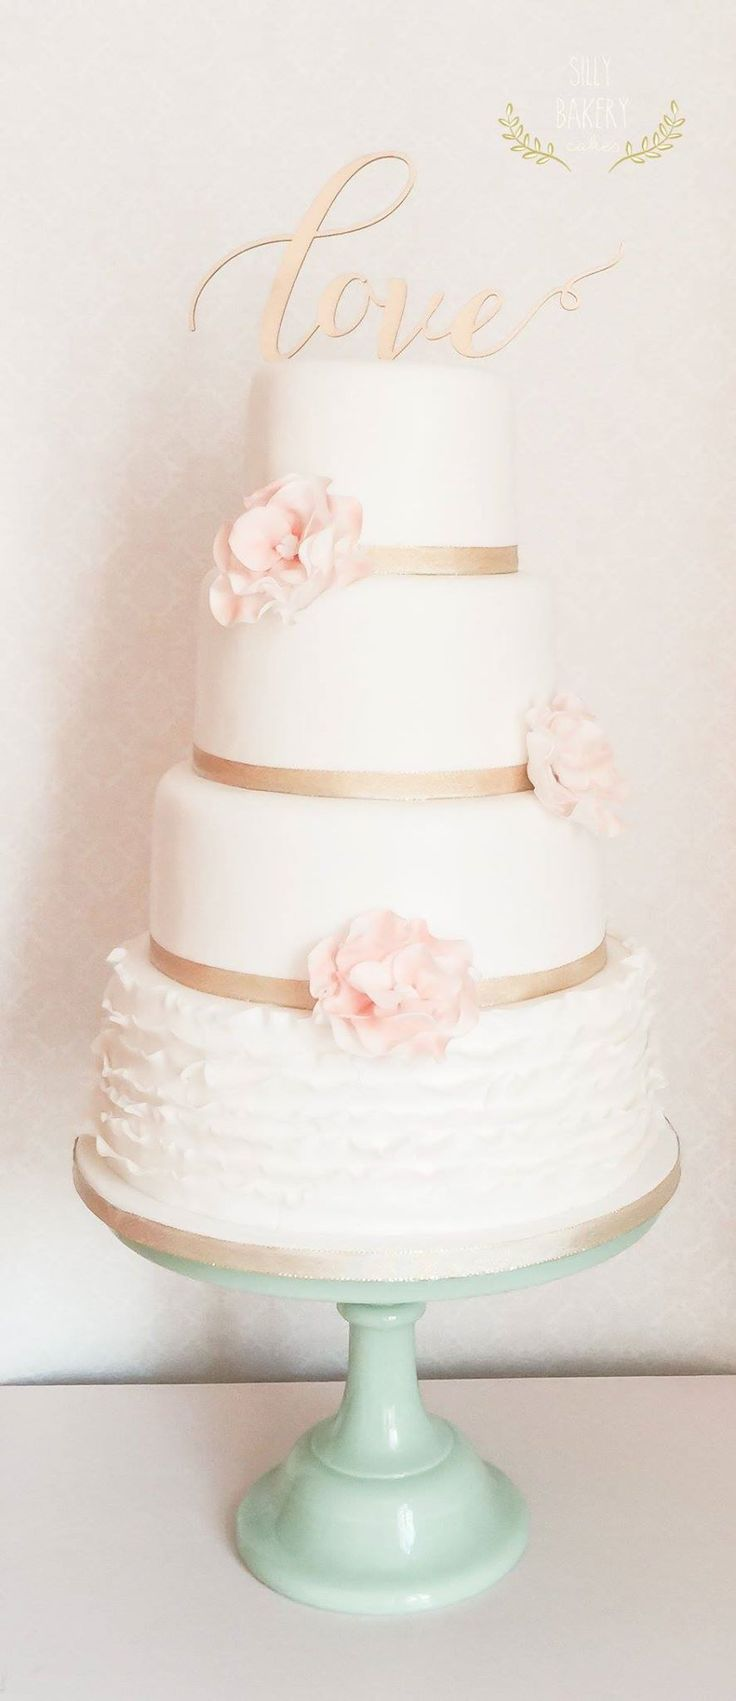 "Soft, cream and pink wedding cake with ""LOVE"" topper from Silly Bakery Cakes"